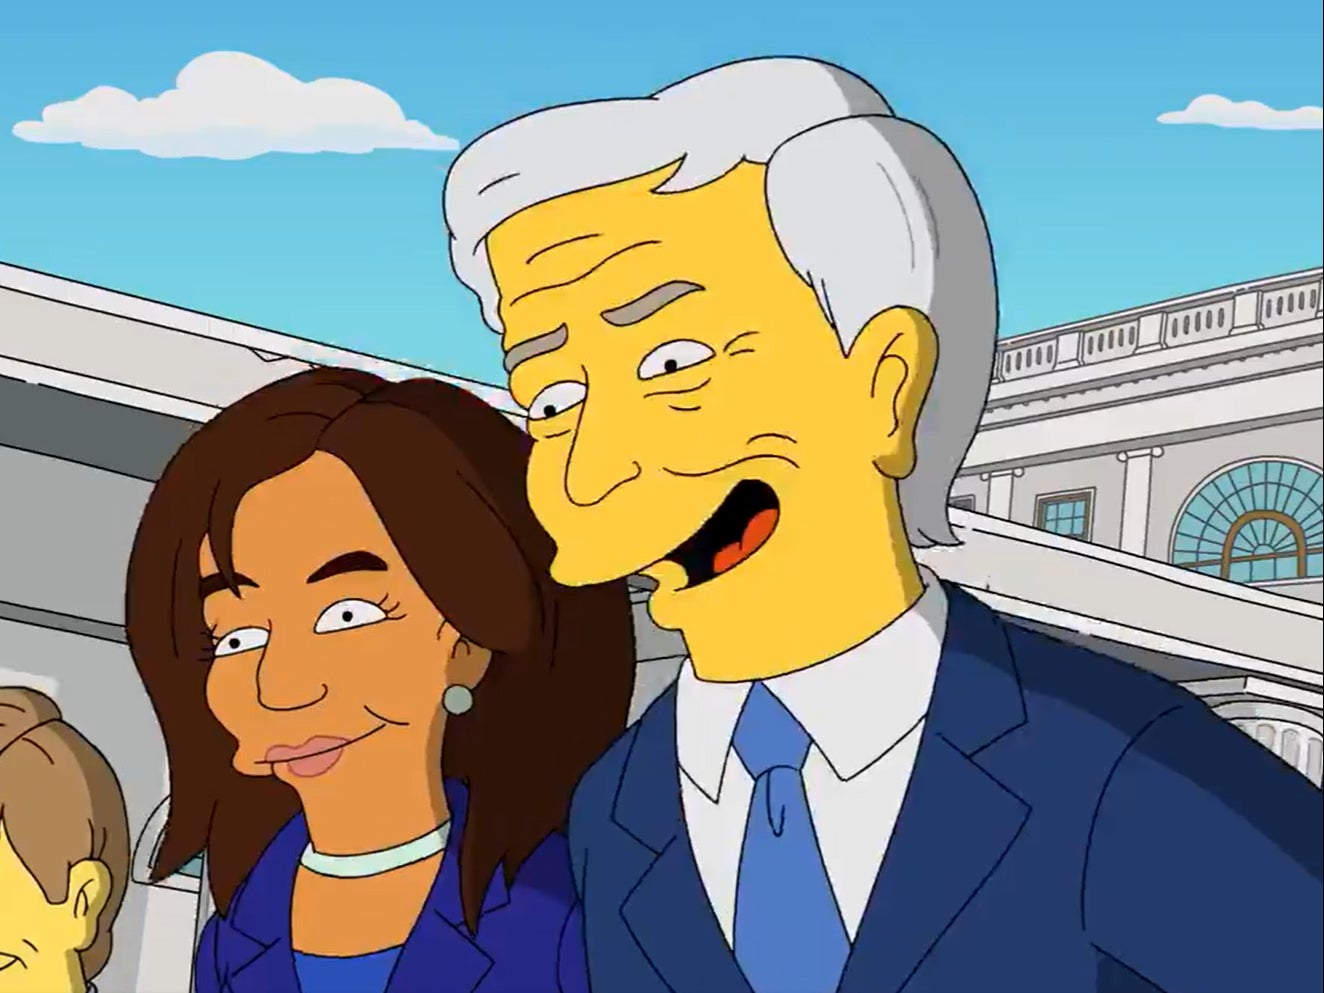 The Simpsons director shares Biden-Harris 'prediction' from 2019